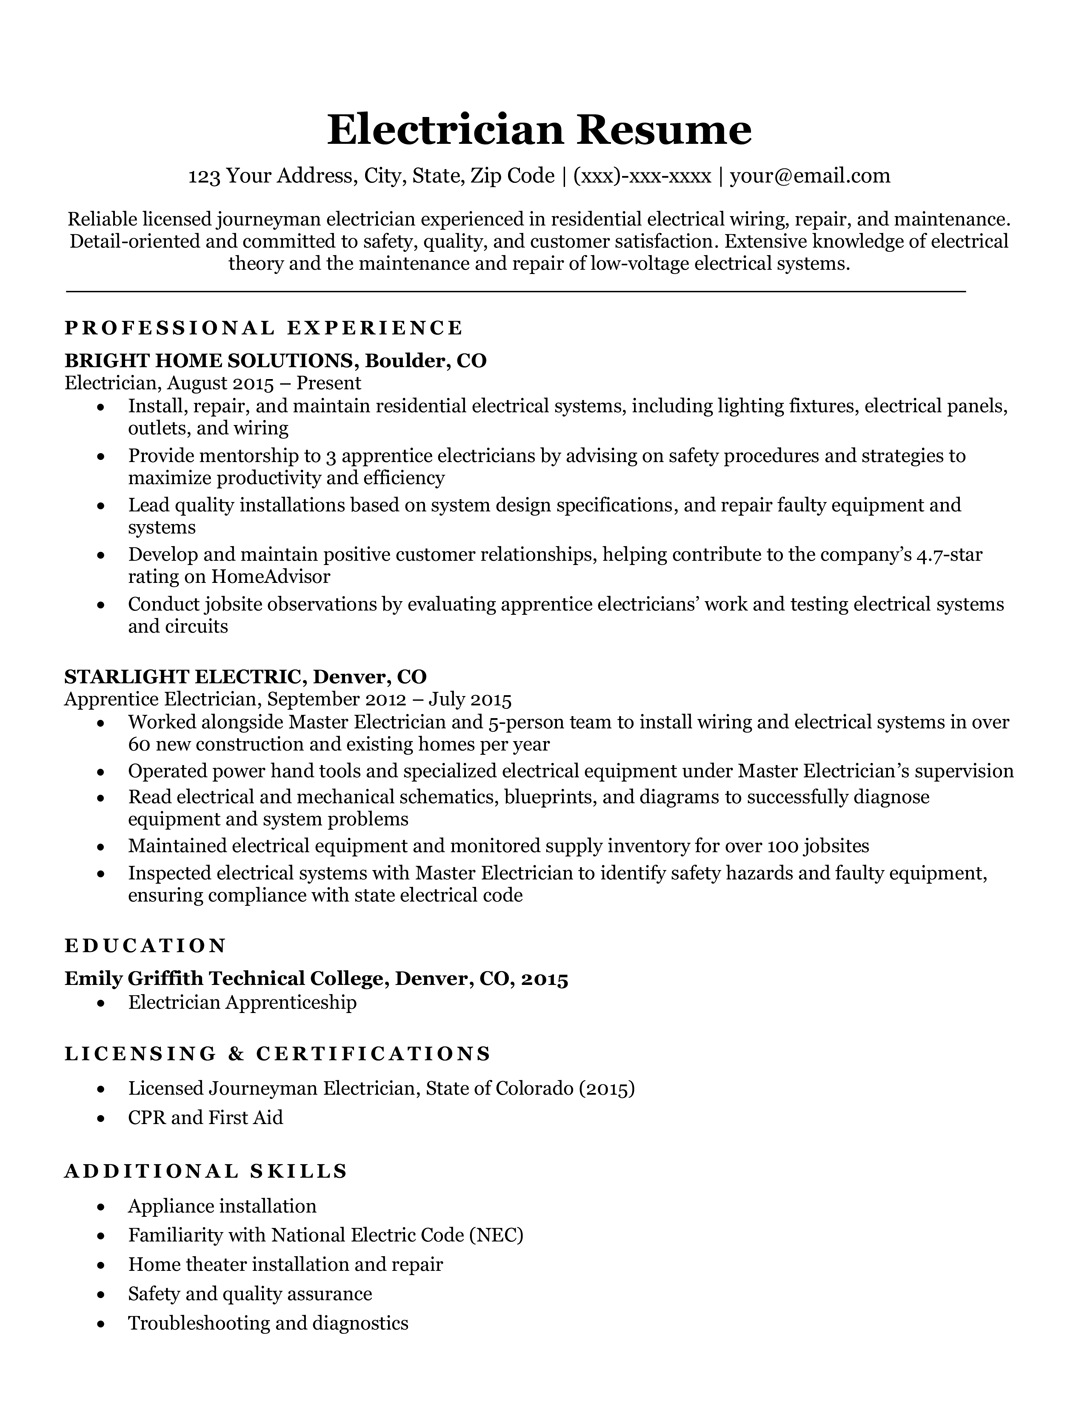 Electrician resume sample